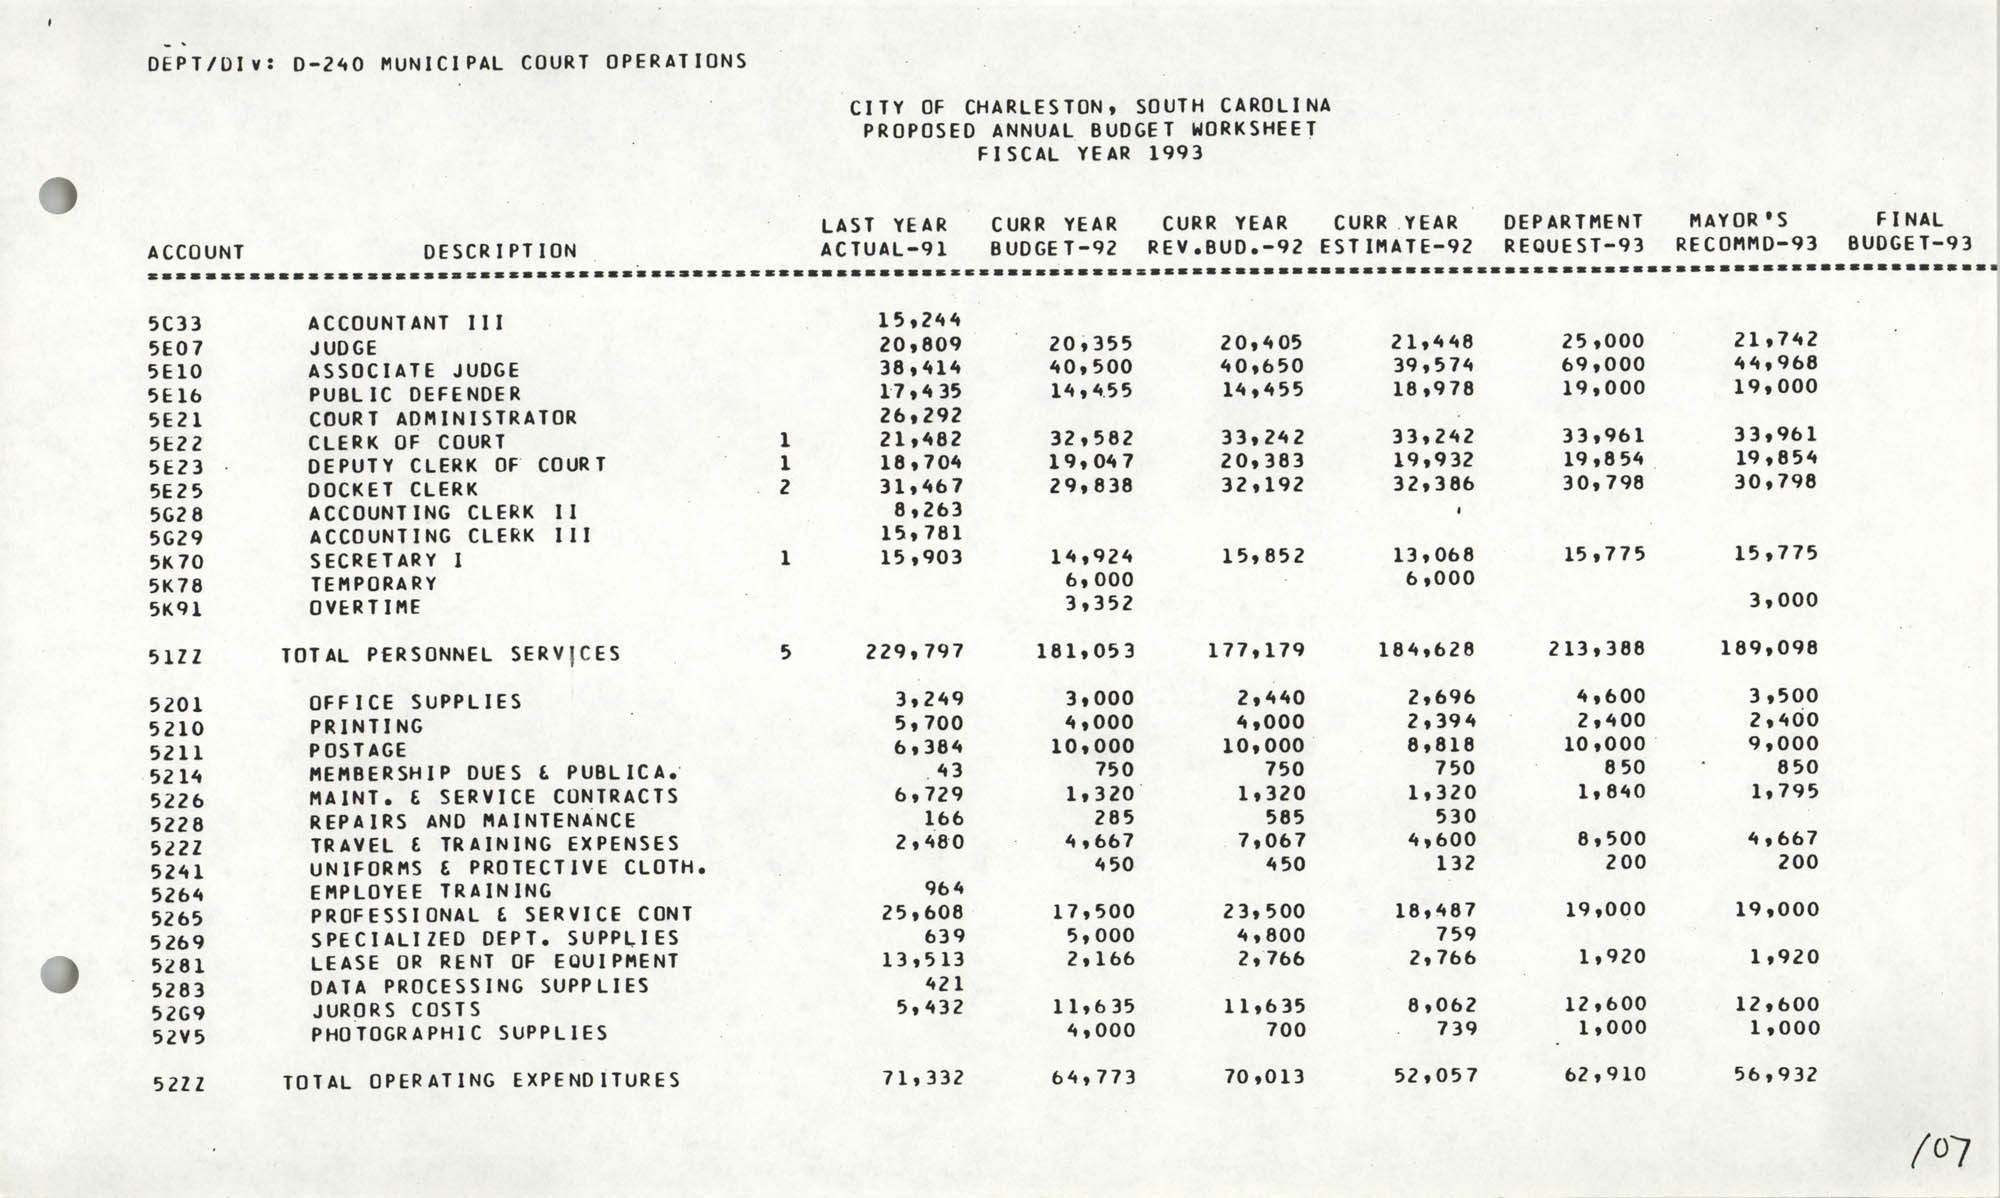 The City Council of Charleston, South Carolina, 1993 Budget, Page 107